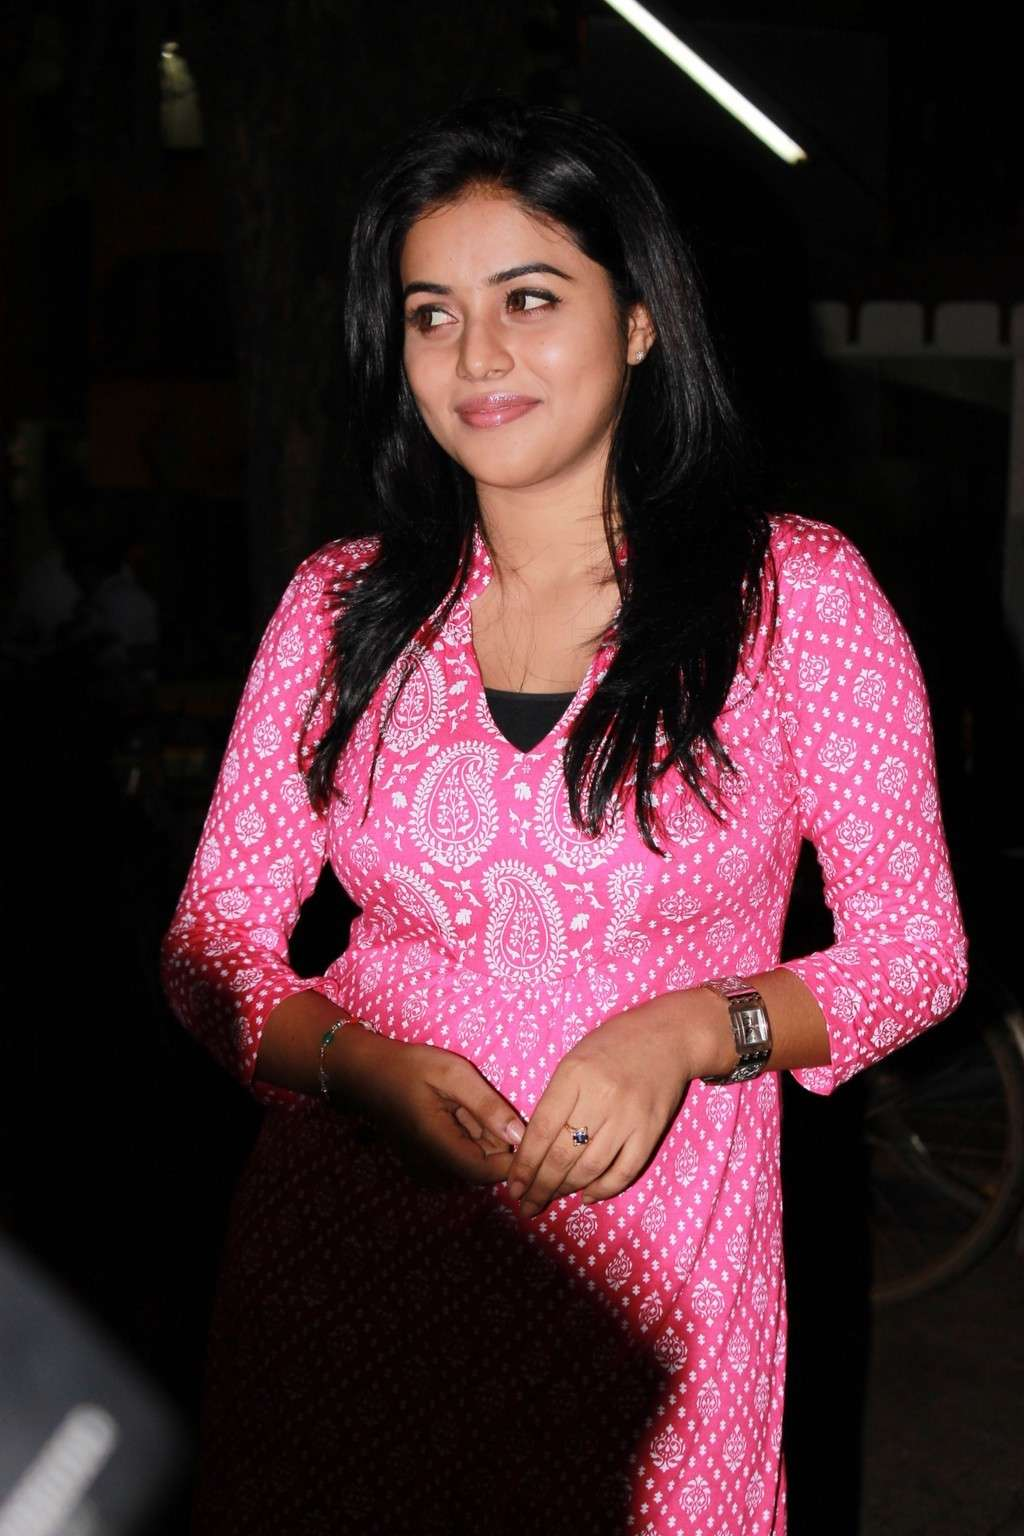 Poorna Bright in Pink Top Poorna19